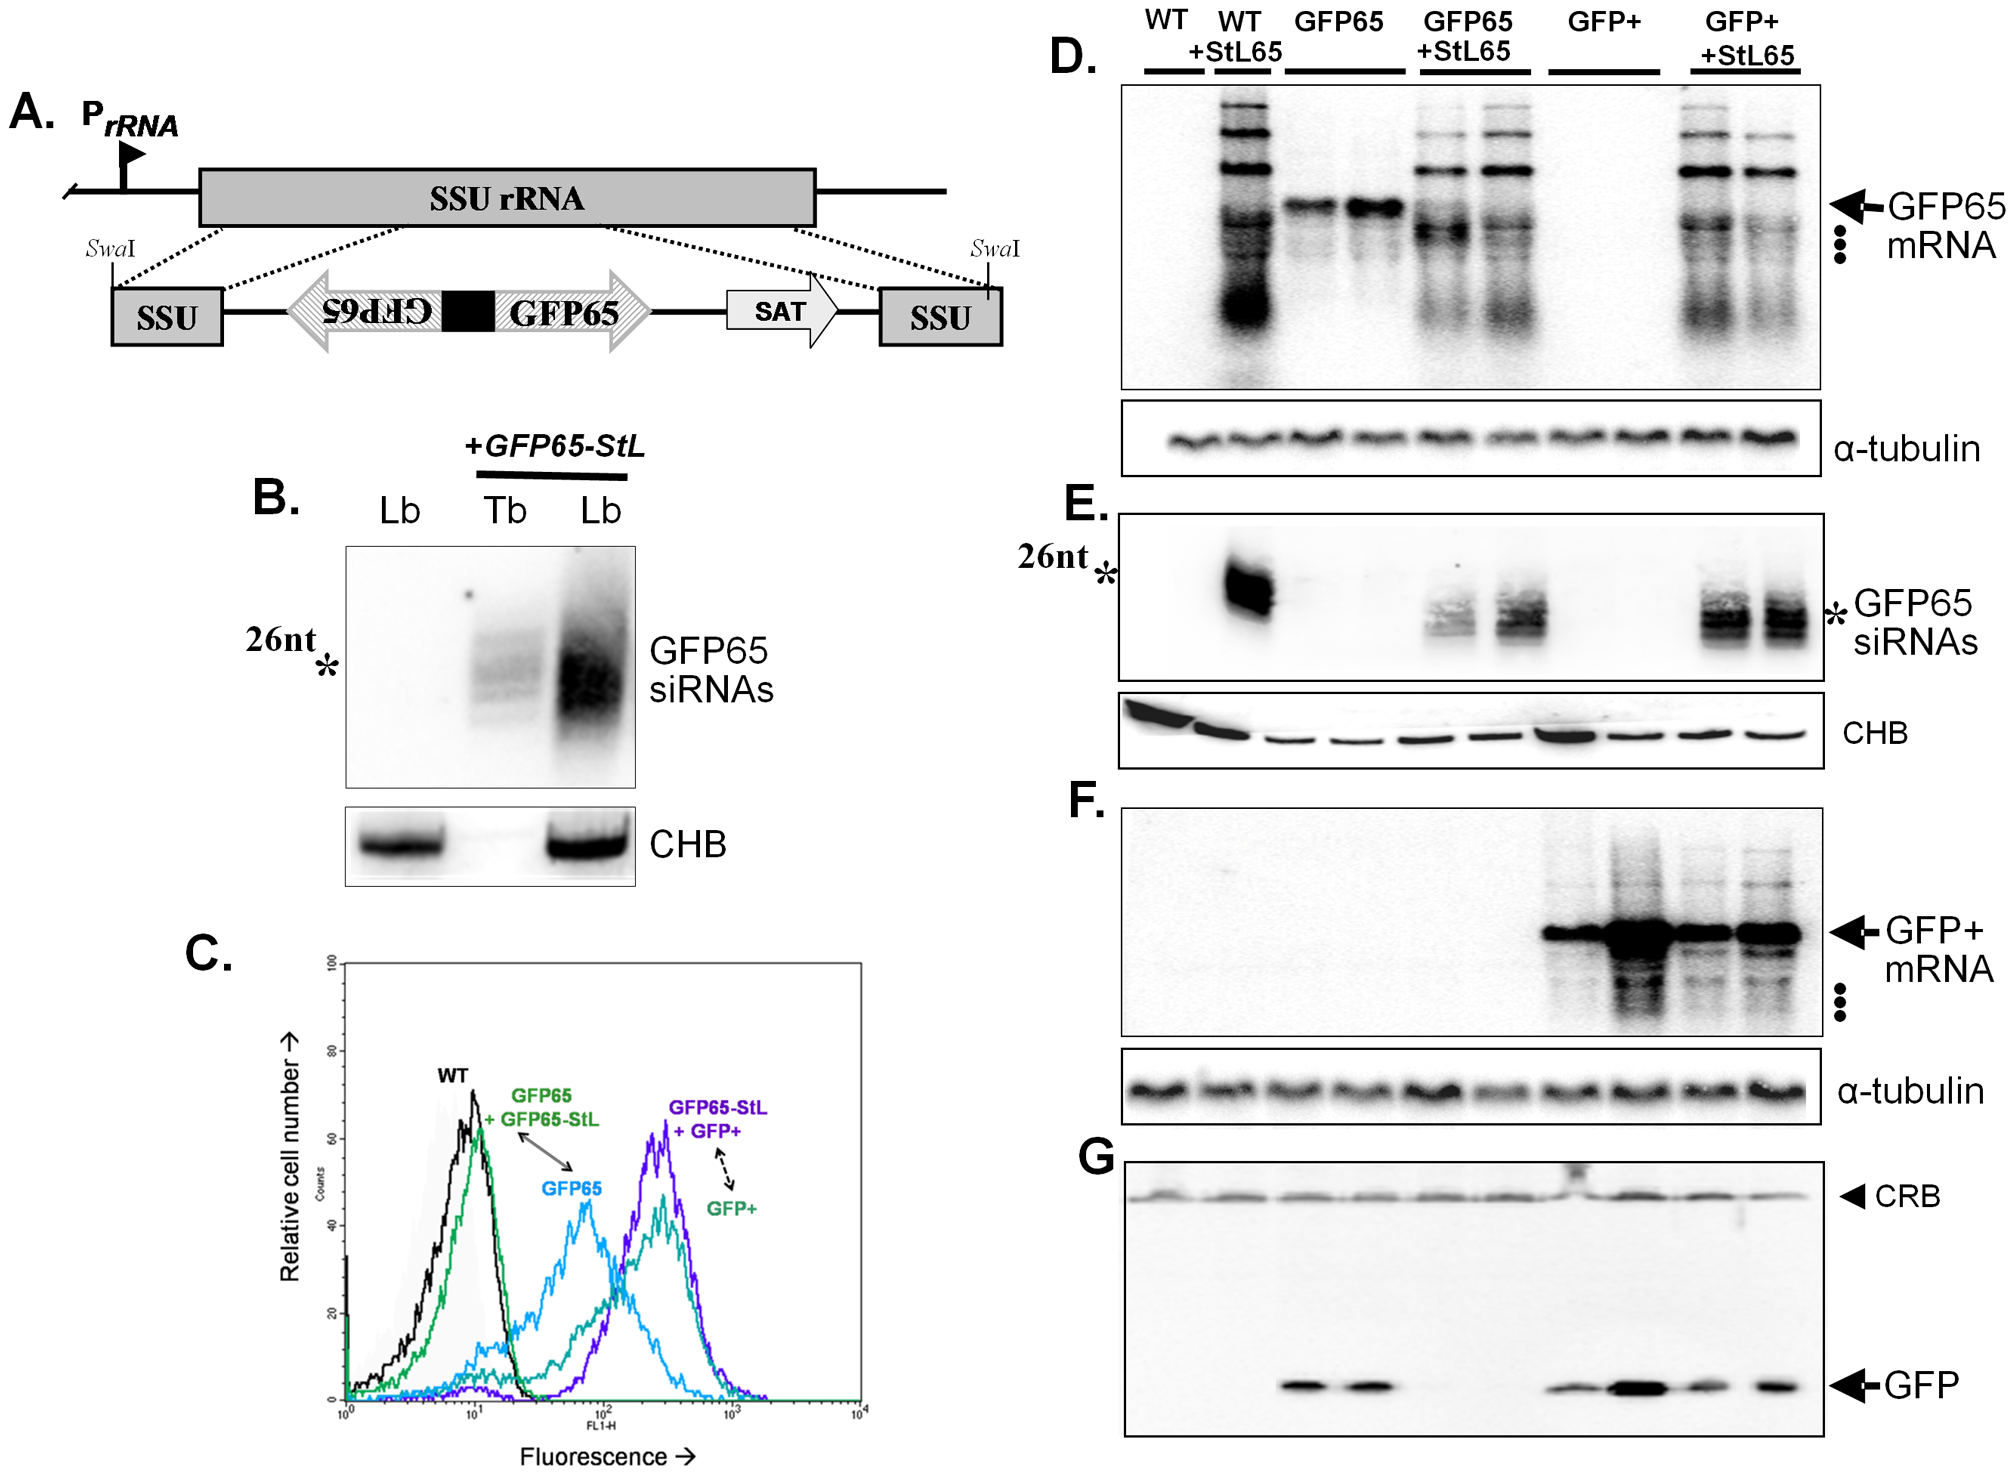 Tests of RNAi pathway activity in <i>L. braziliensis</i> using GFP reporters.